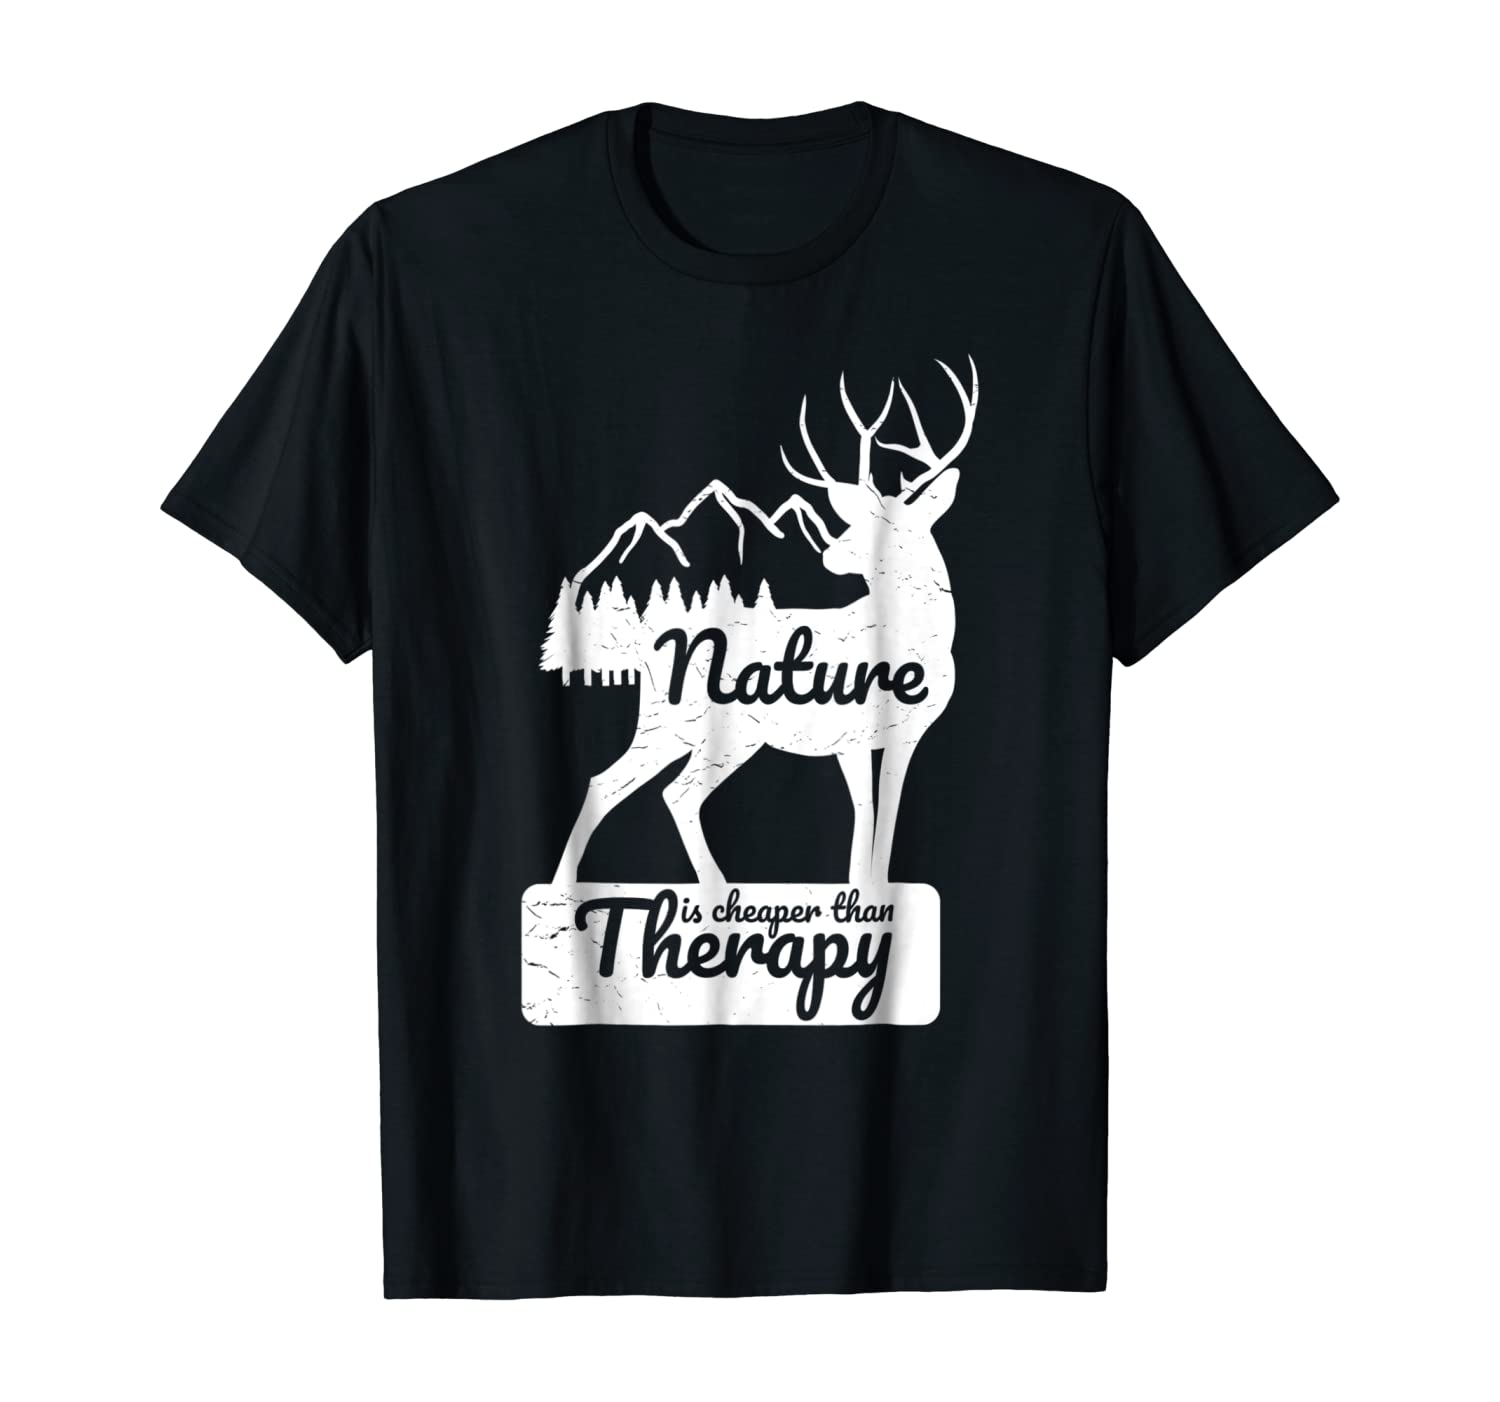 Funny Novelty Hiking T Shirt Nature Cheaper Than Therapy